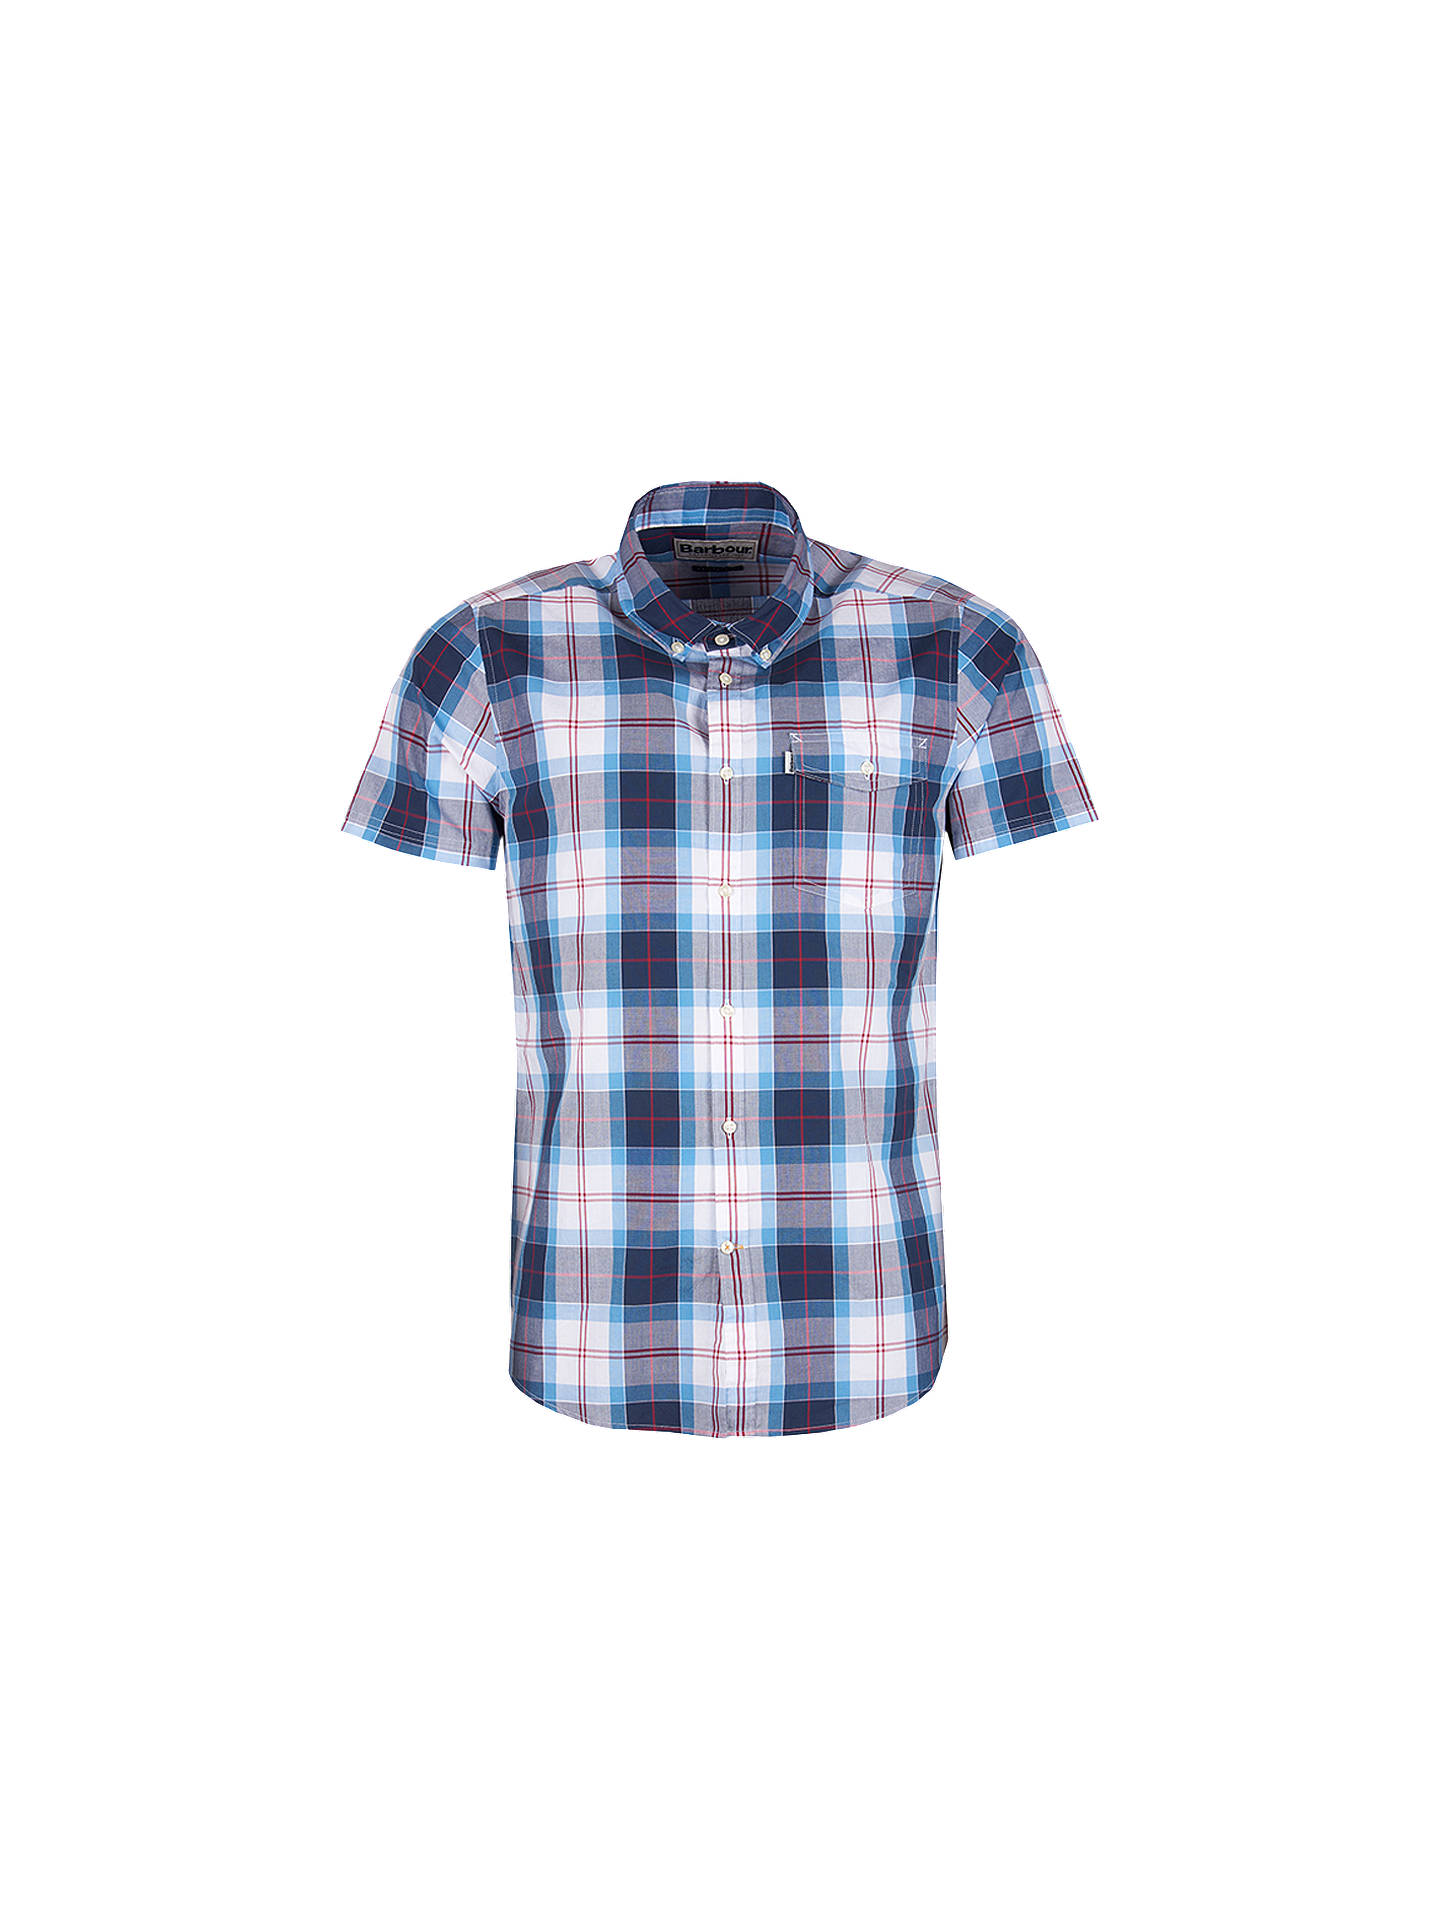 BuyBarbour Cabin Short Sleeve Check Shirt, Mid Blue, S Online at johnlewis.com